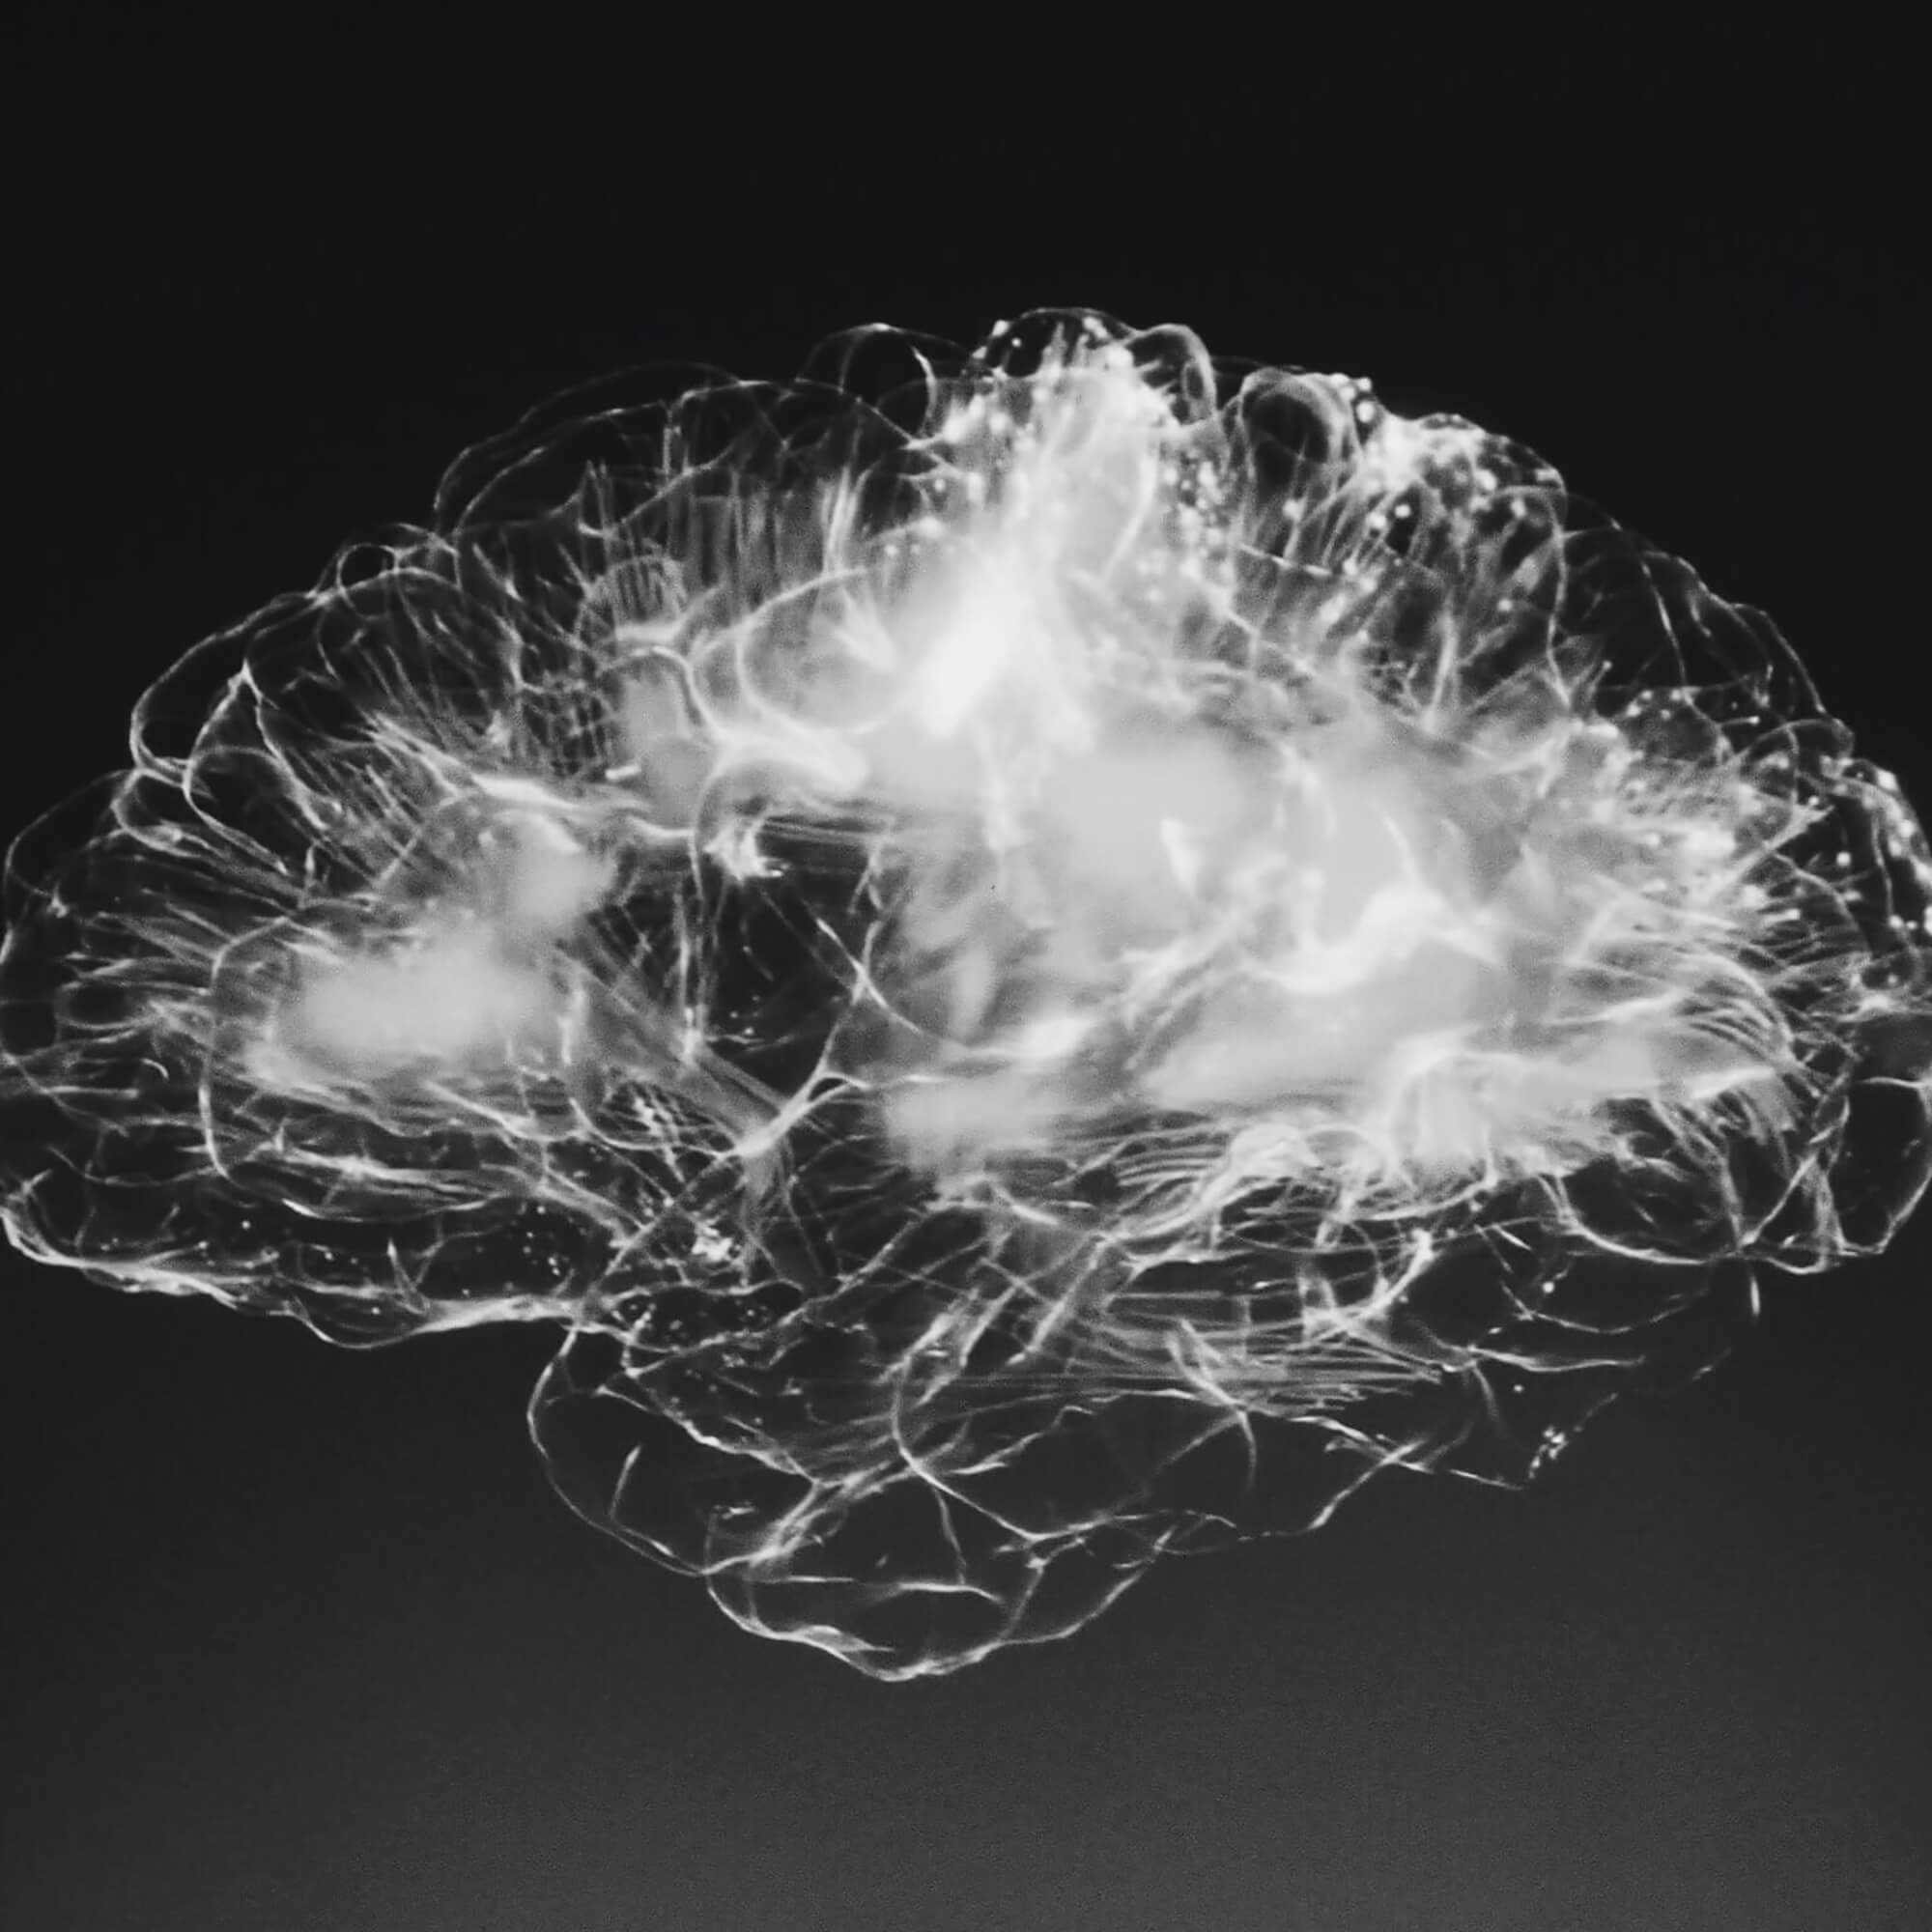 An abstract image of a white brain shape on a black background